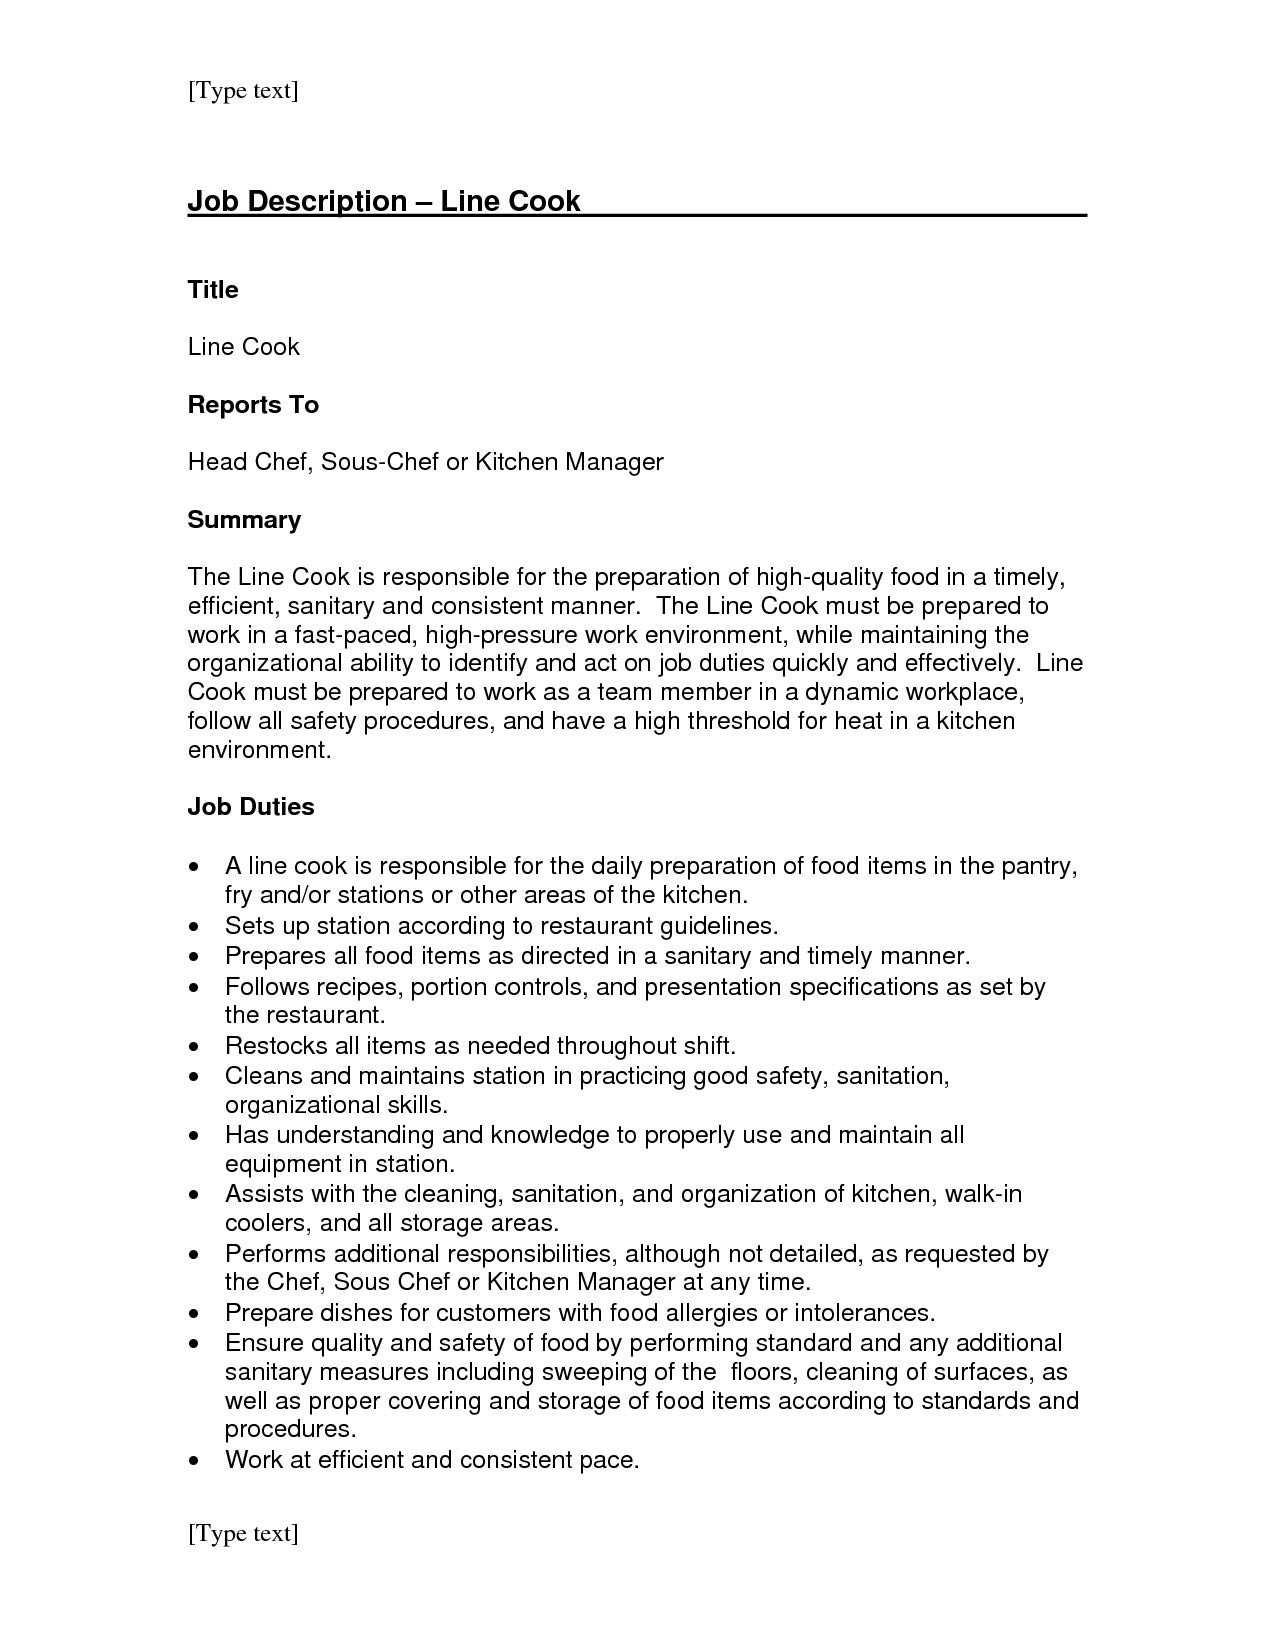 Line Cook Job Description for Resume - Chef Job Description Resume